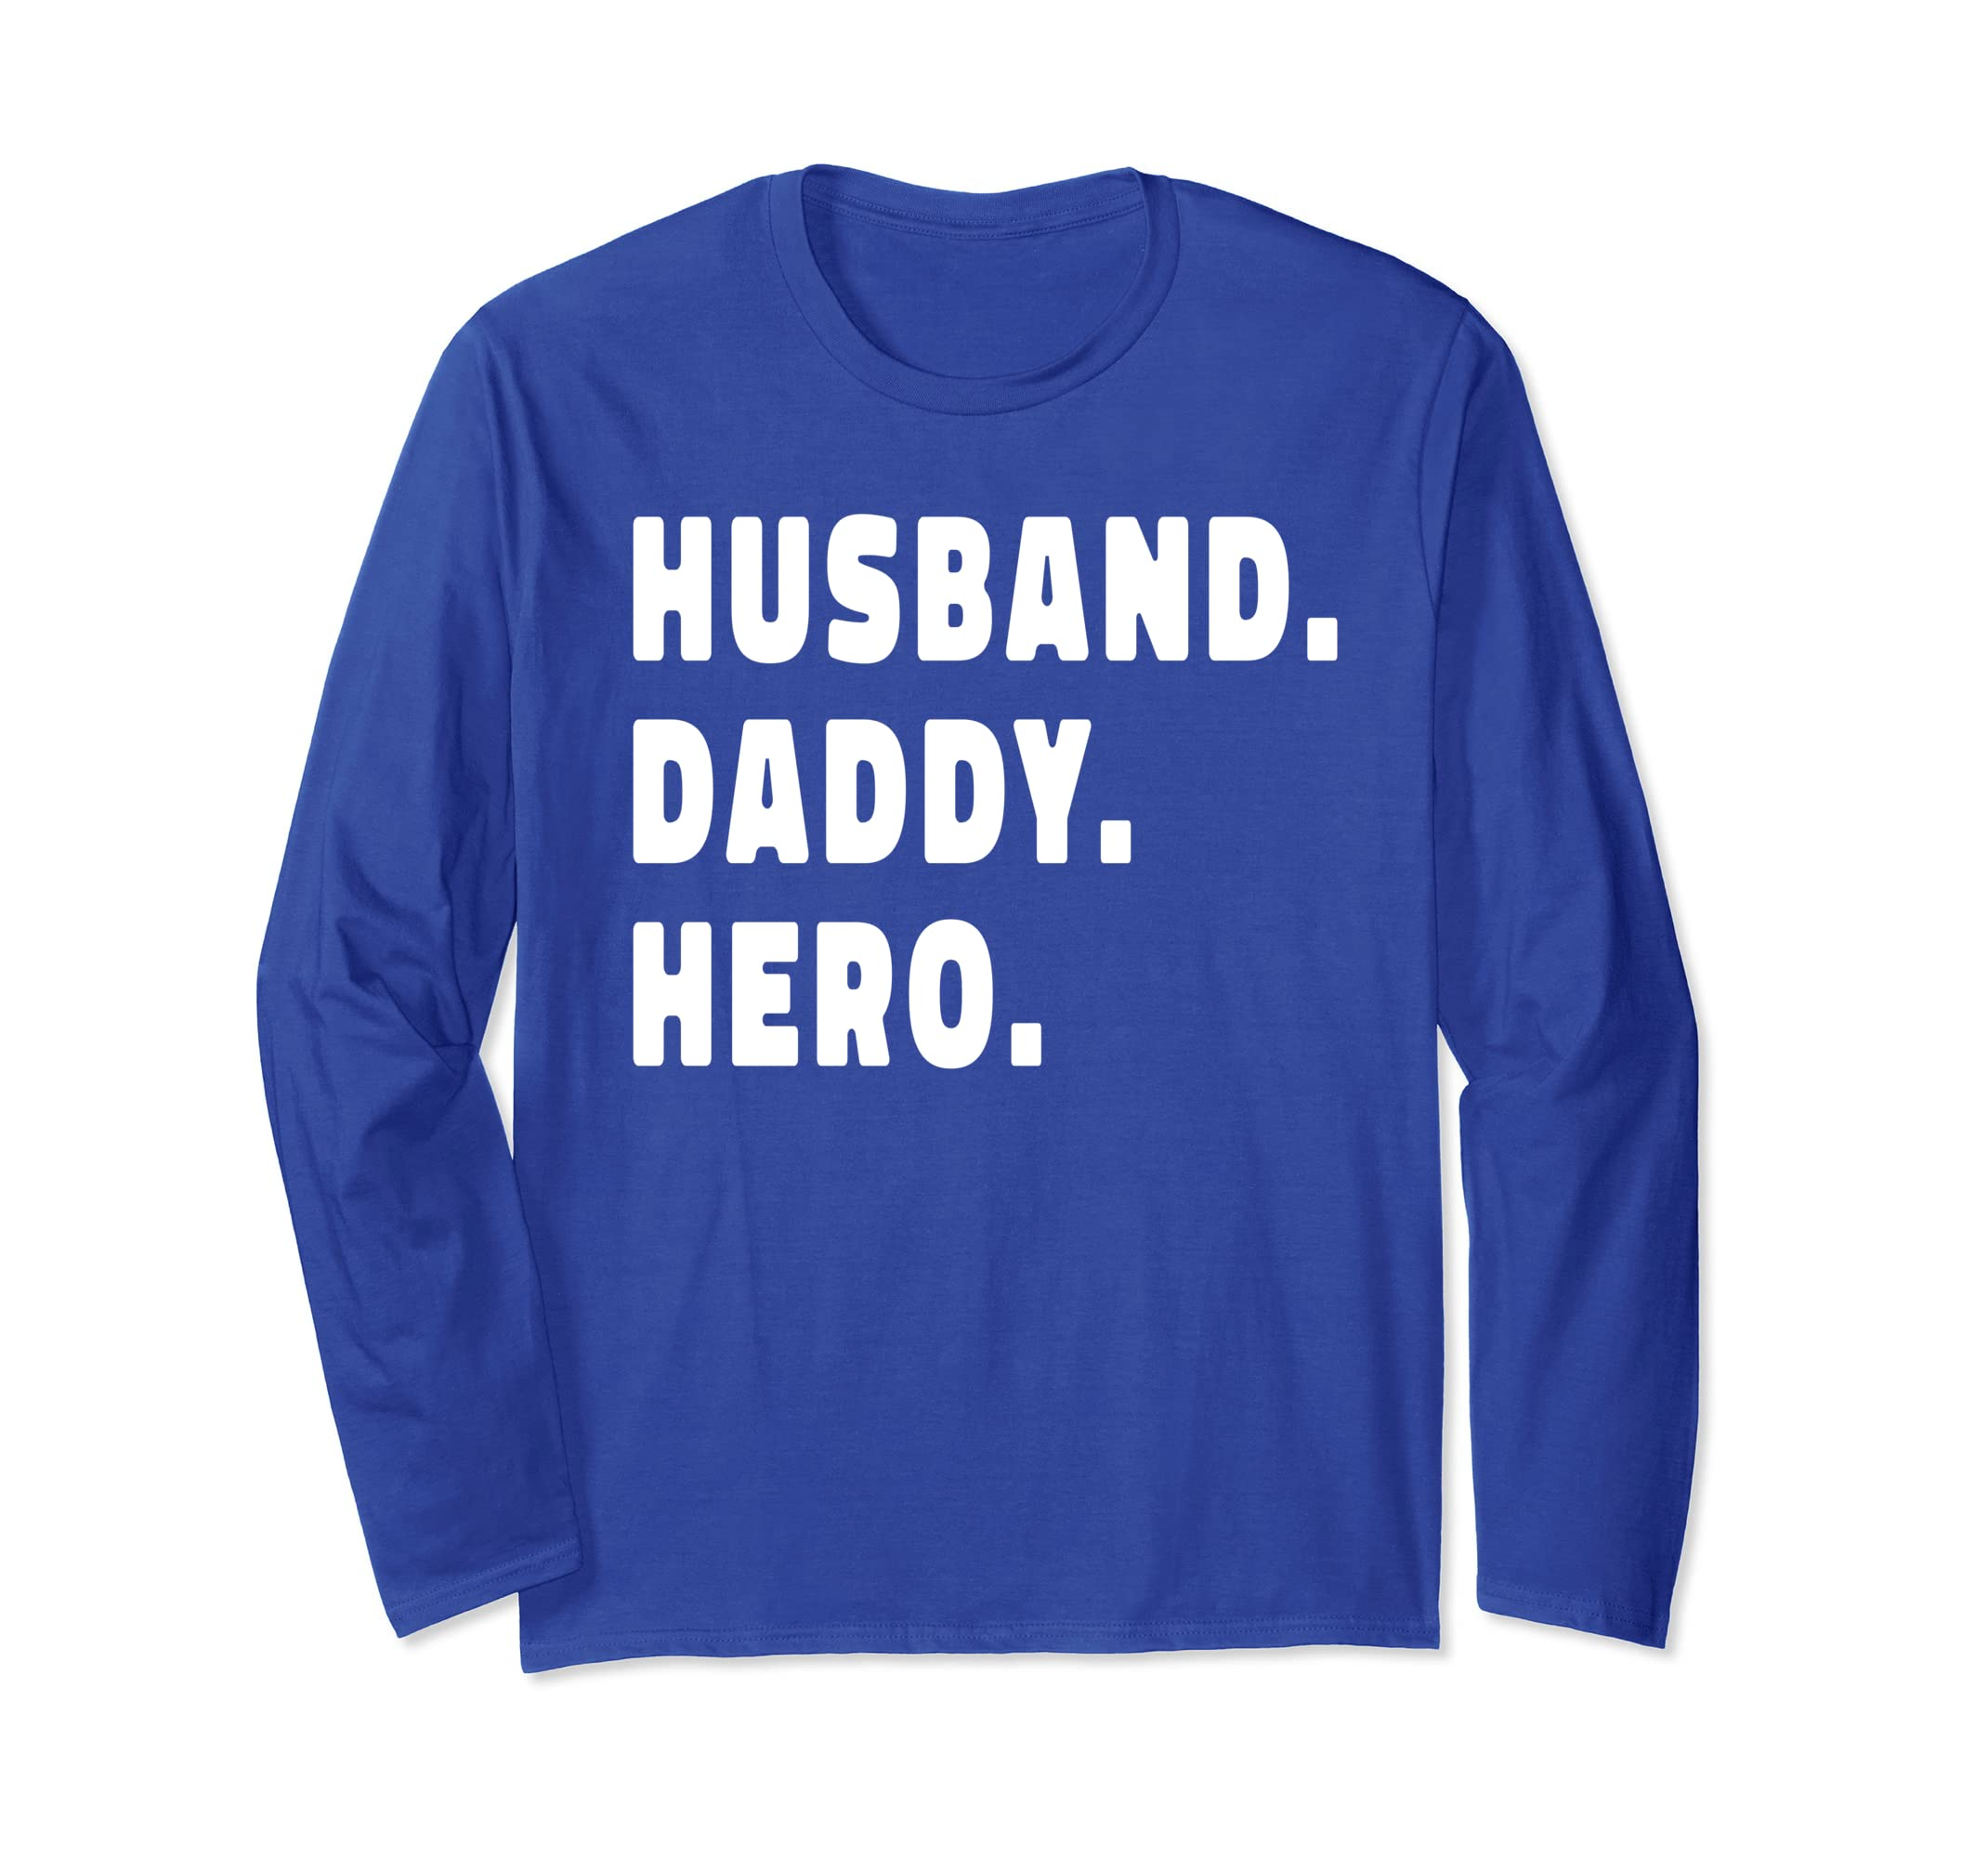 ad5da5bc Amazon.com: HUSBAND DADDY HERO Shirt Cute Funny Fathers Day Gift Long Sleeve  T-Shirt: Clothing